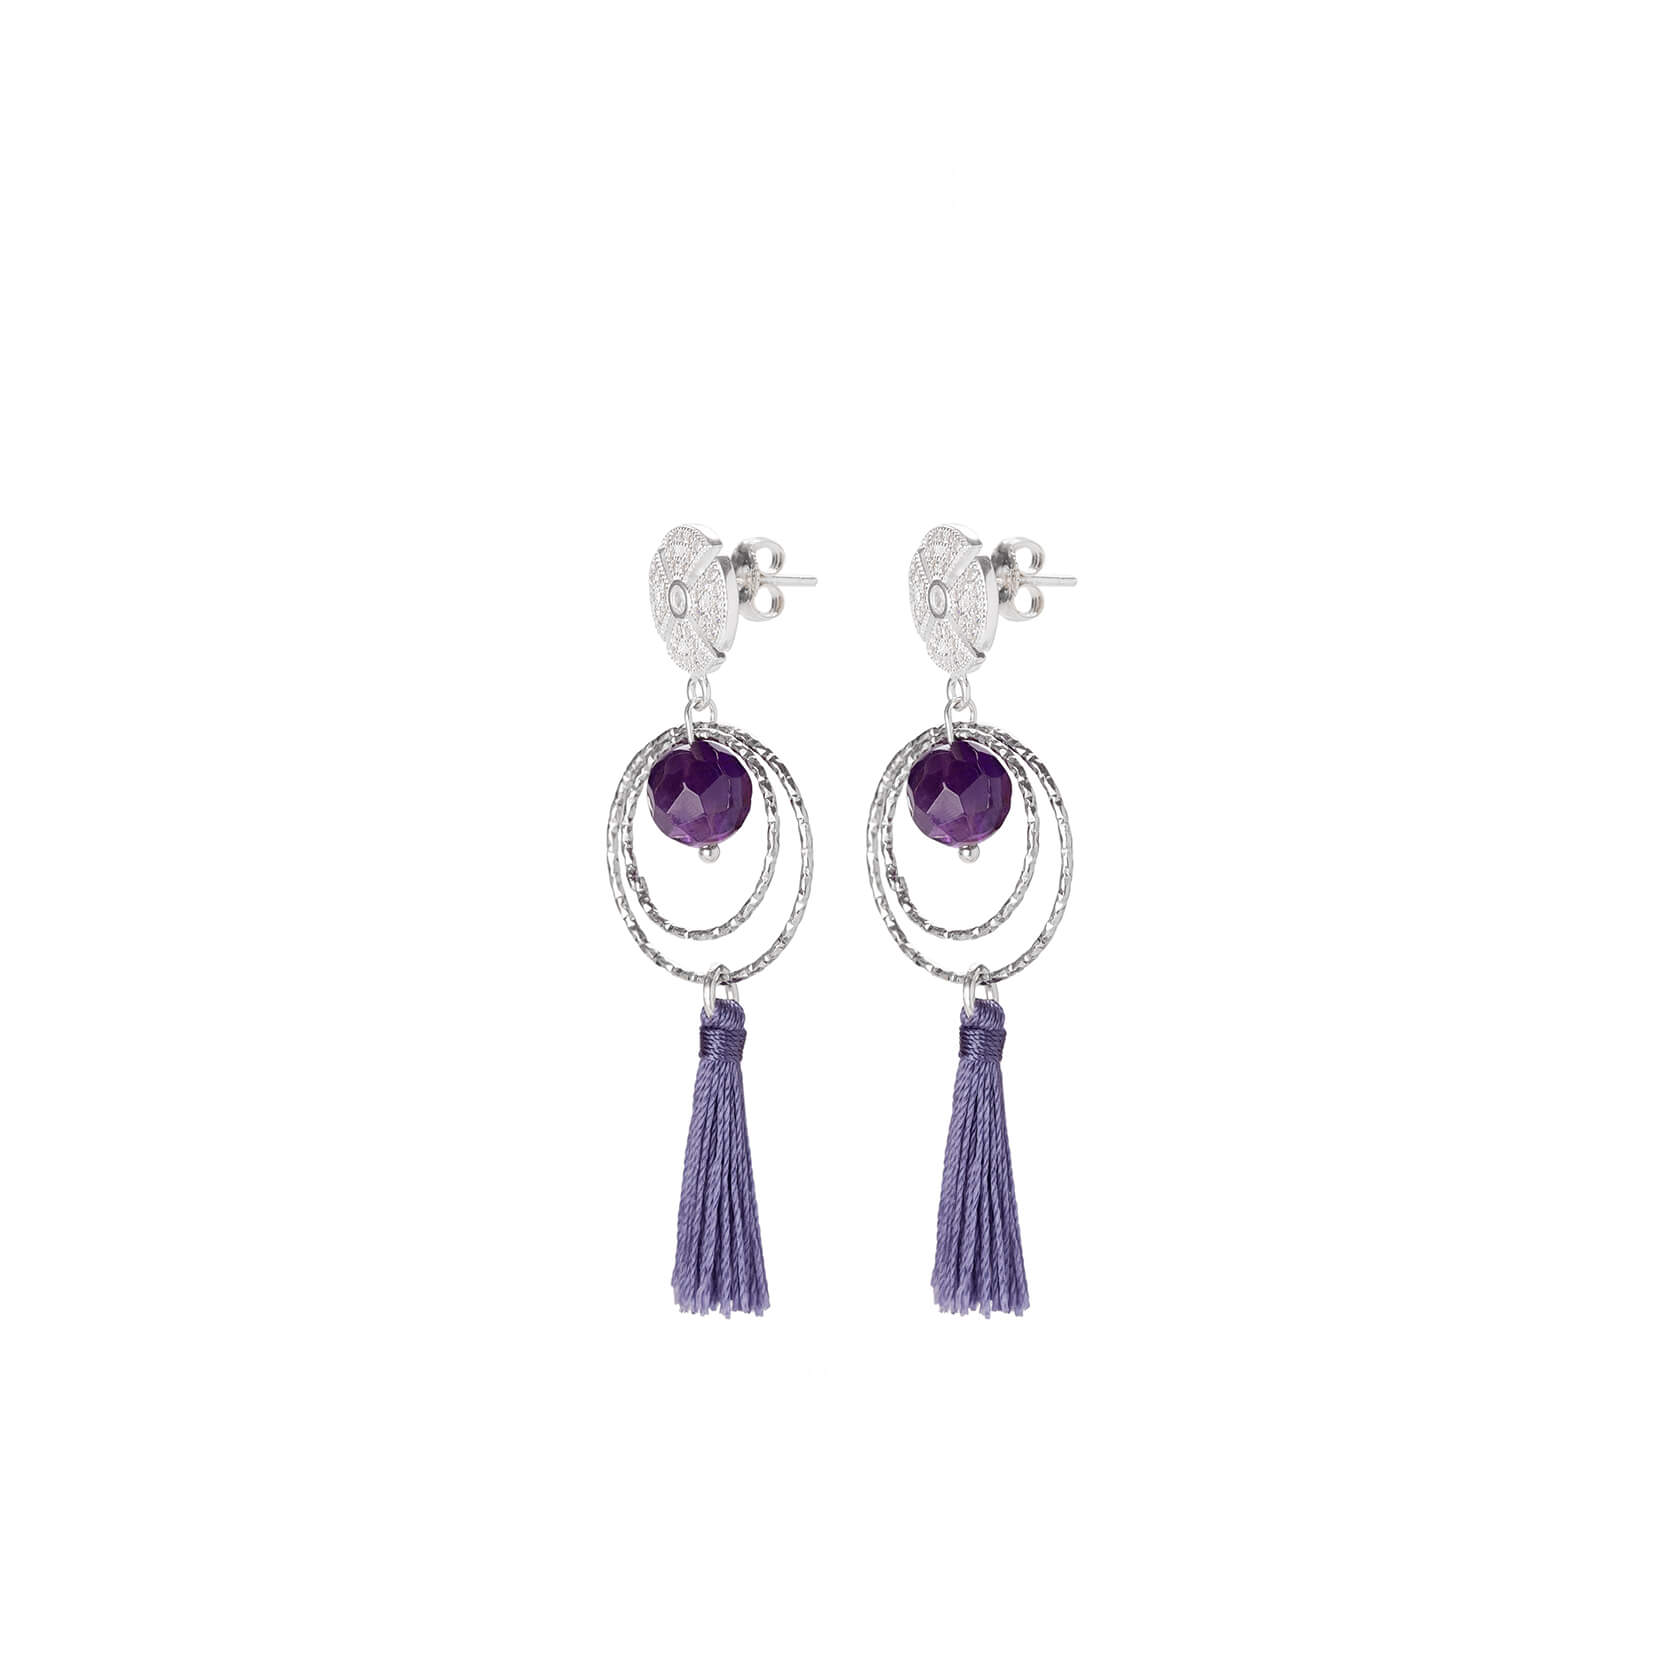 Amethyst earrings from Marybola